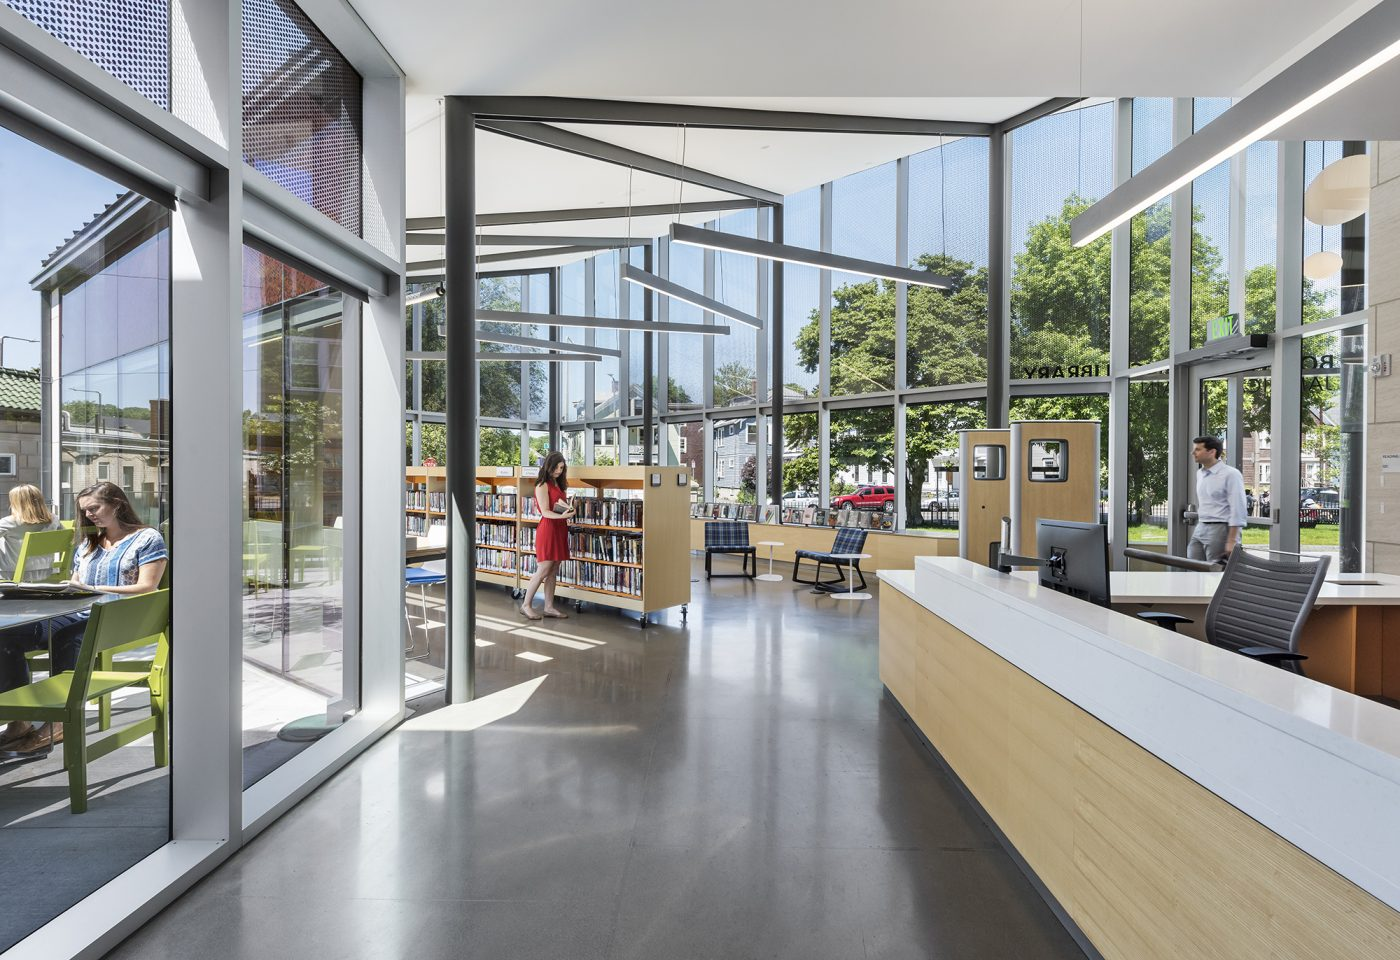 Utile recognized in AN Interior Magazine's Top 50 Interior Firms of 2020